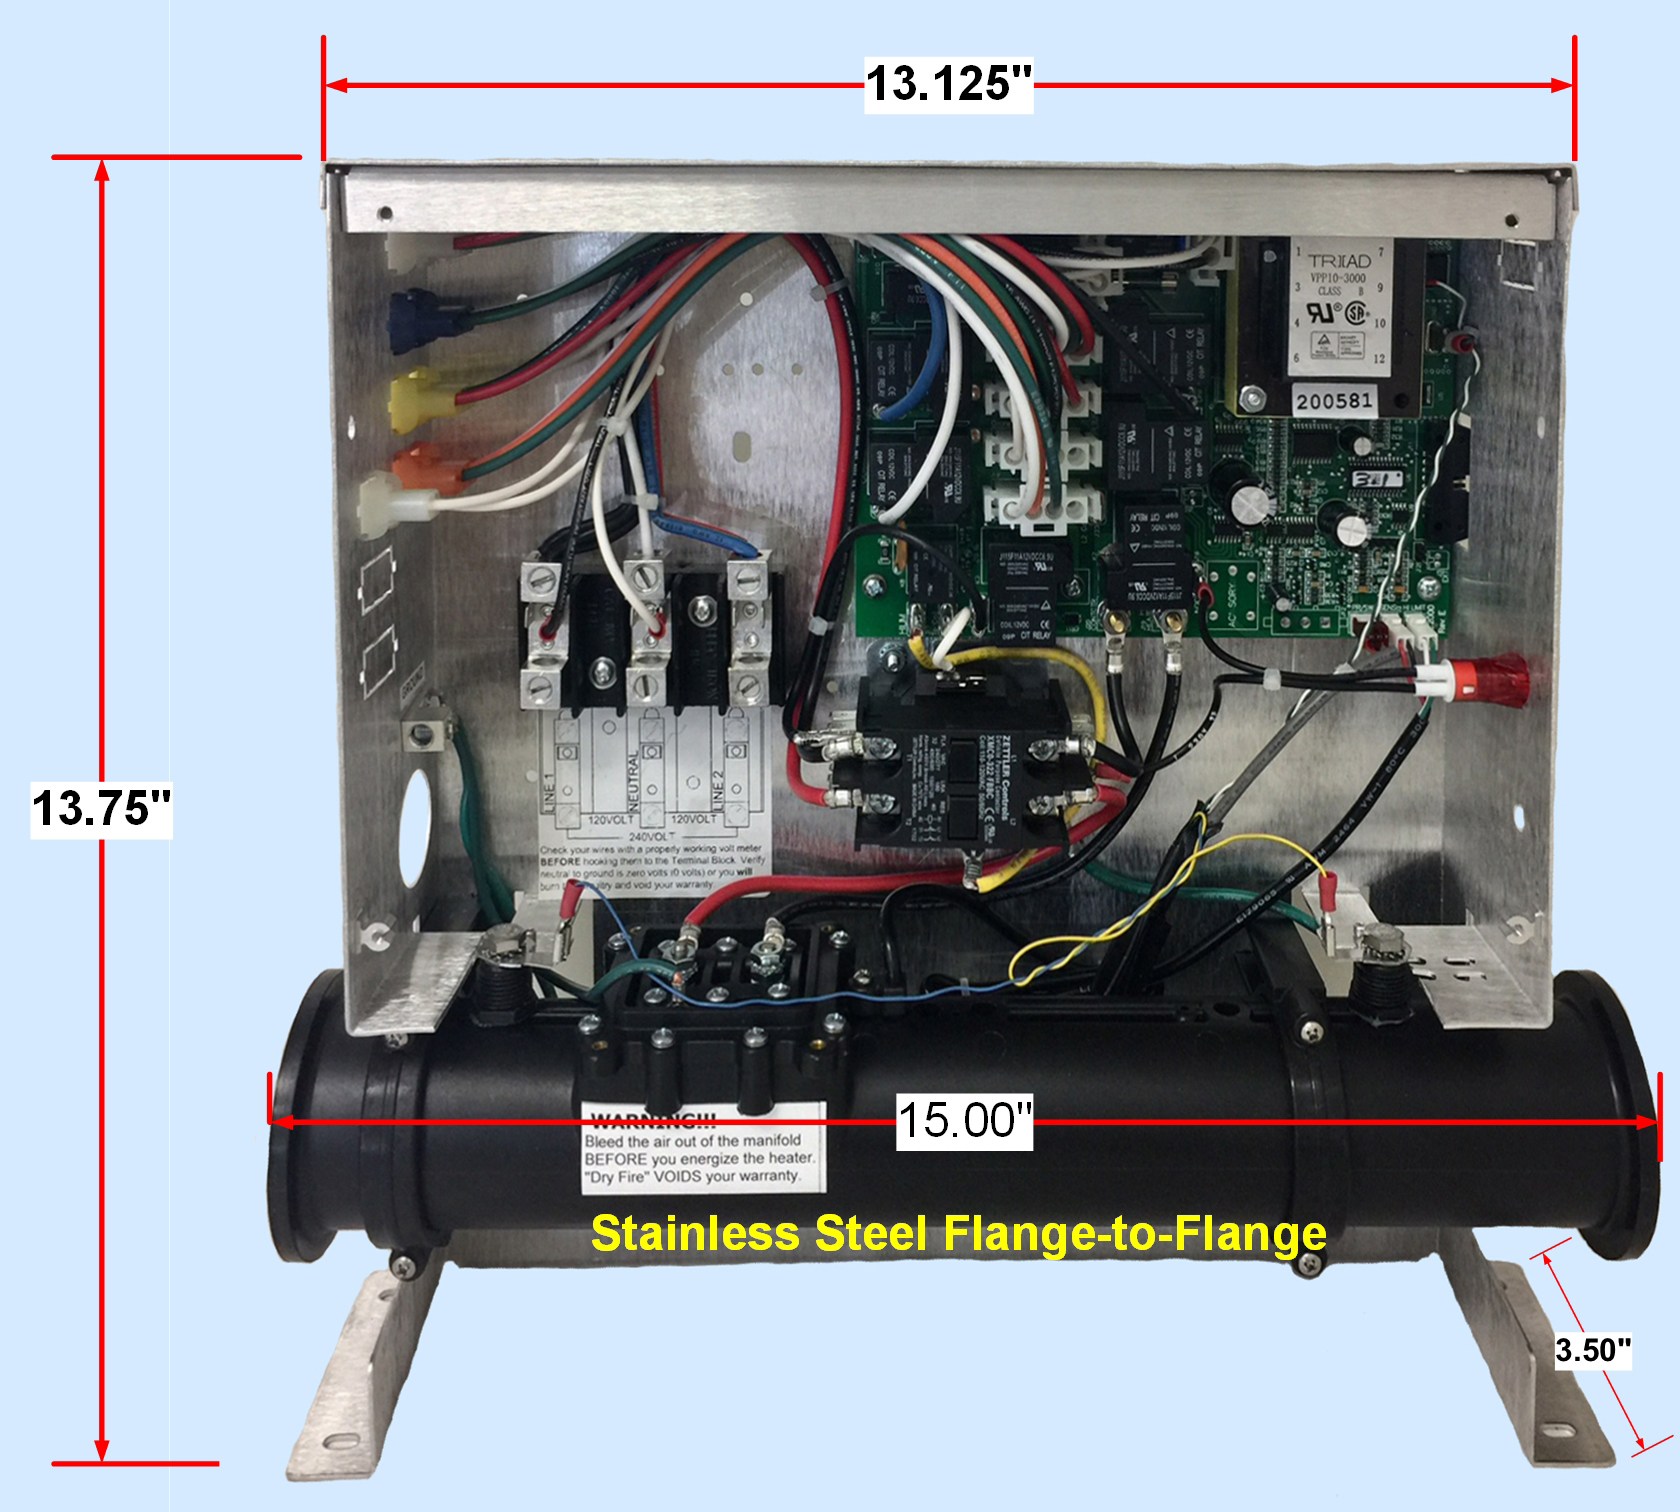 arctic spa heater wiring diagram whirlpool gold dryer dimension one get free image about